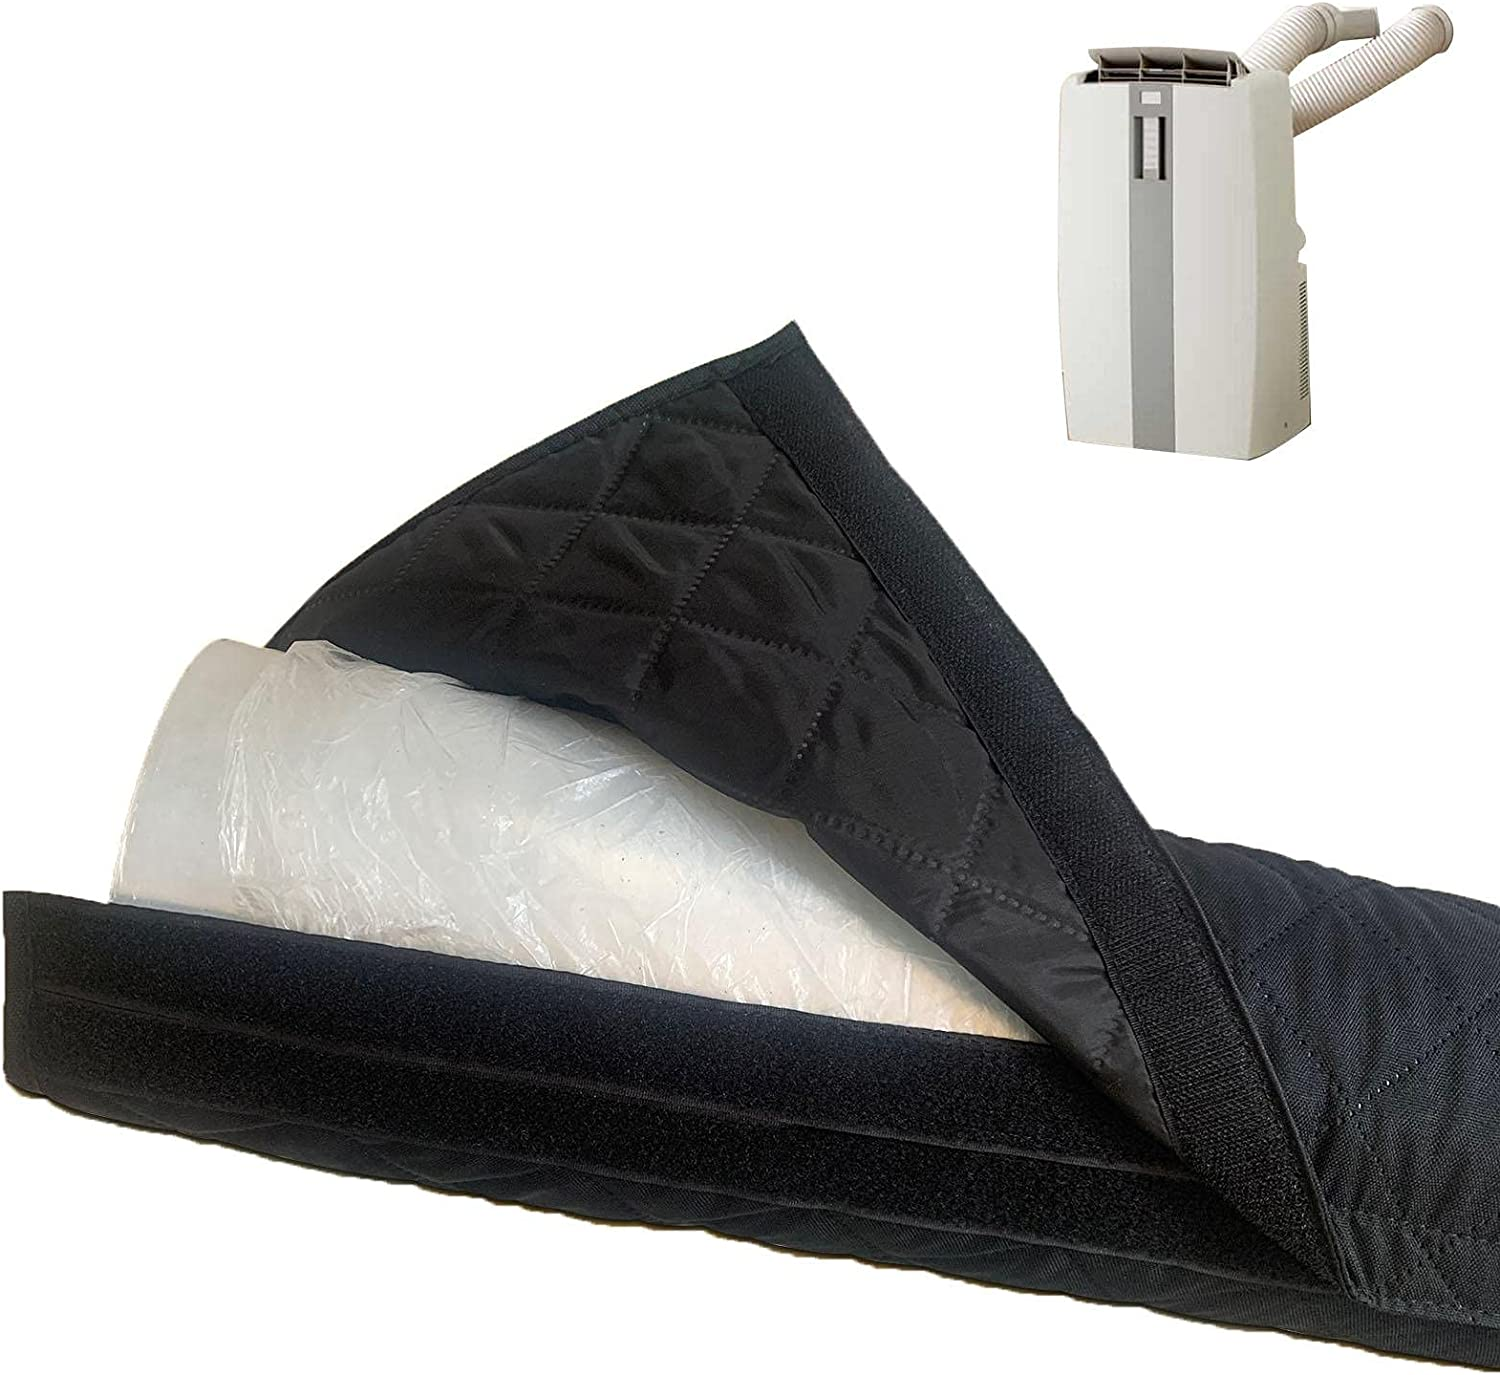 Nanyaciv Charlotte Mall Hose Cover Max 46% OFF for Portable Ac Conditioner Air Sleeve